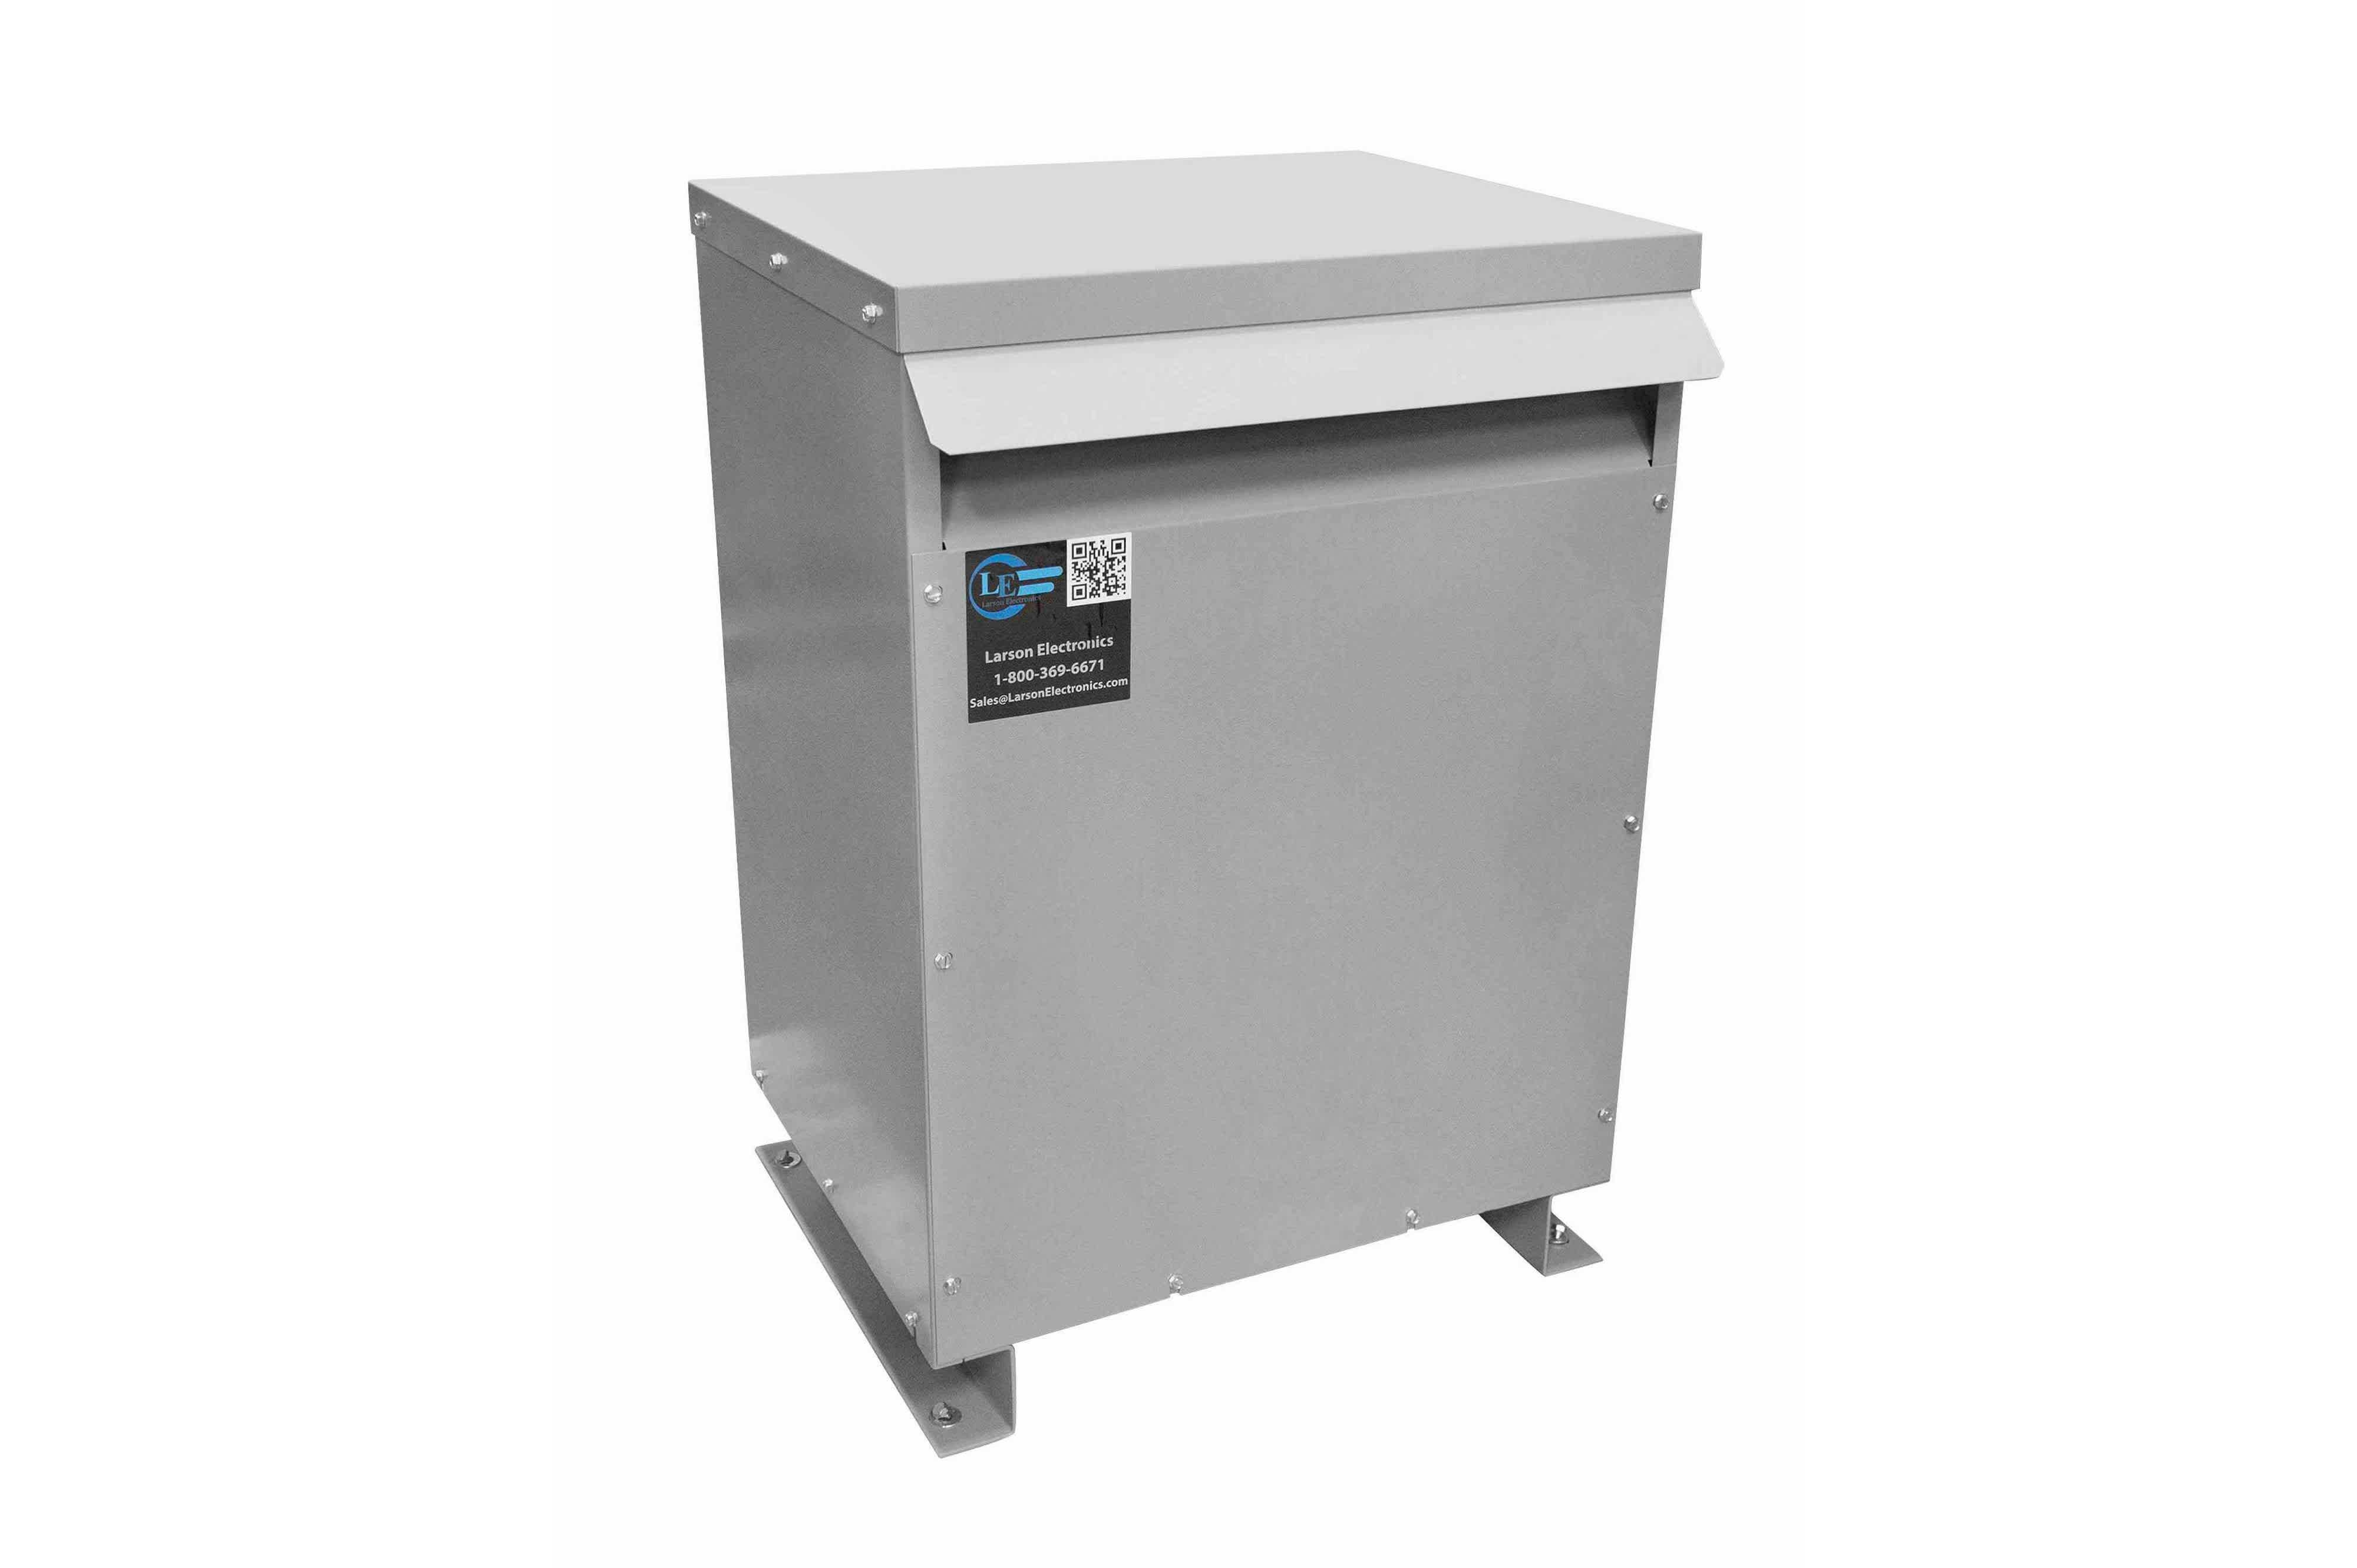 45 kVA 3PH Isolation Transformer, 460V Delta Primary, 575V Delta Secondary, N3R, Ventilated, 60 Hz